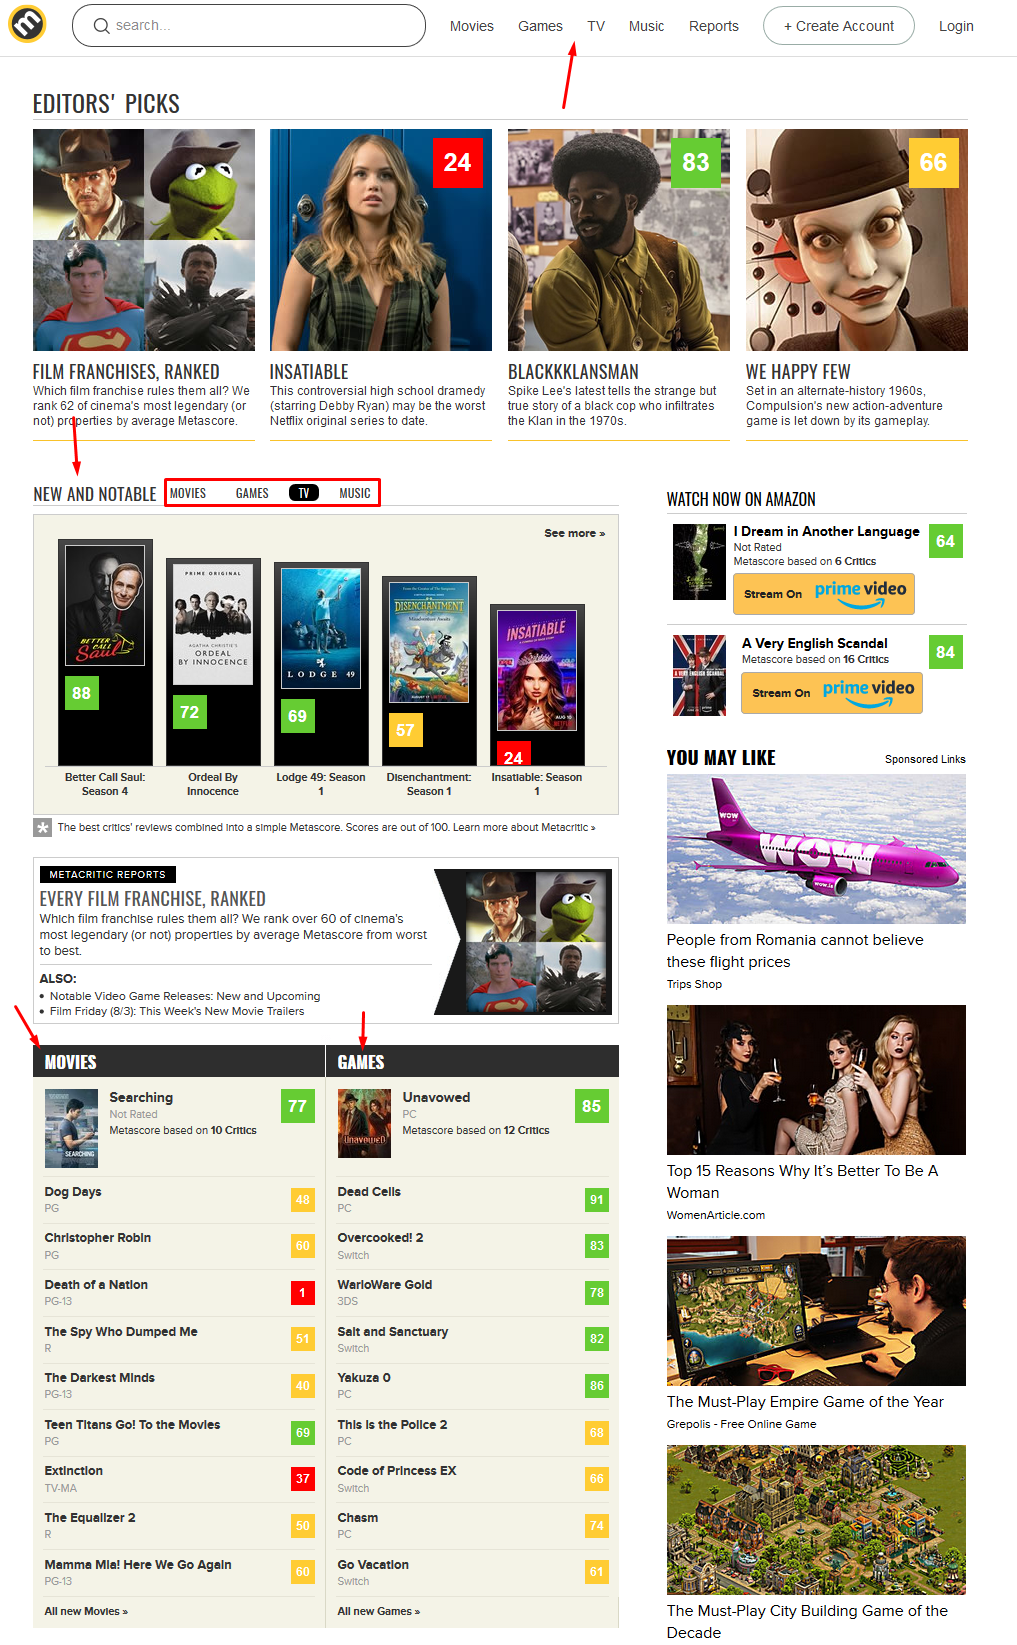 Navigation is crucial to the success of a WordPress news aggregator website